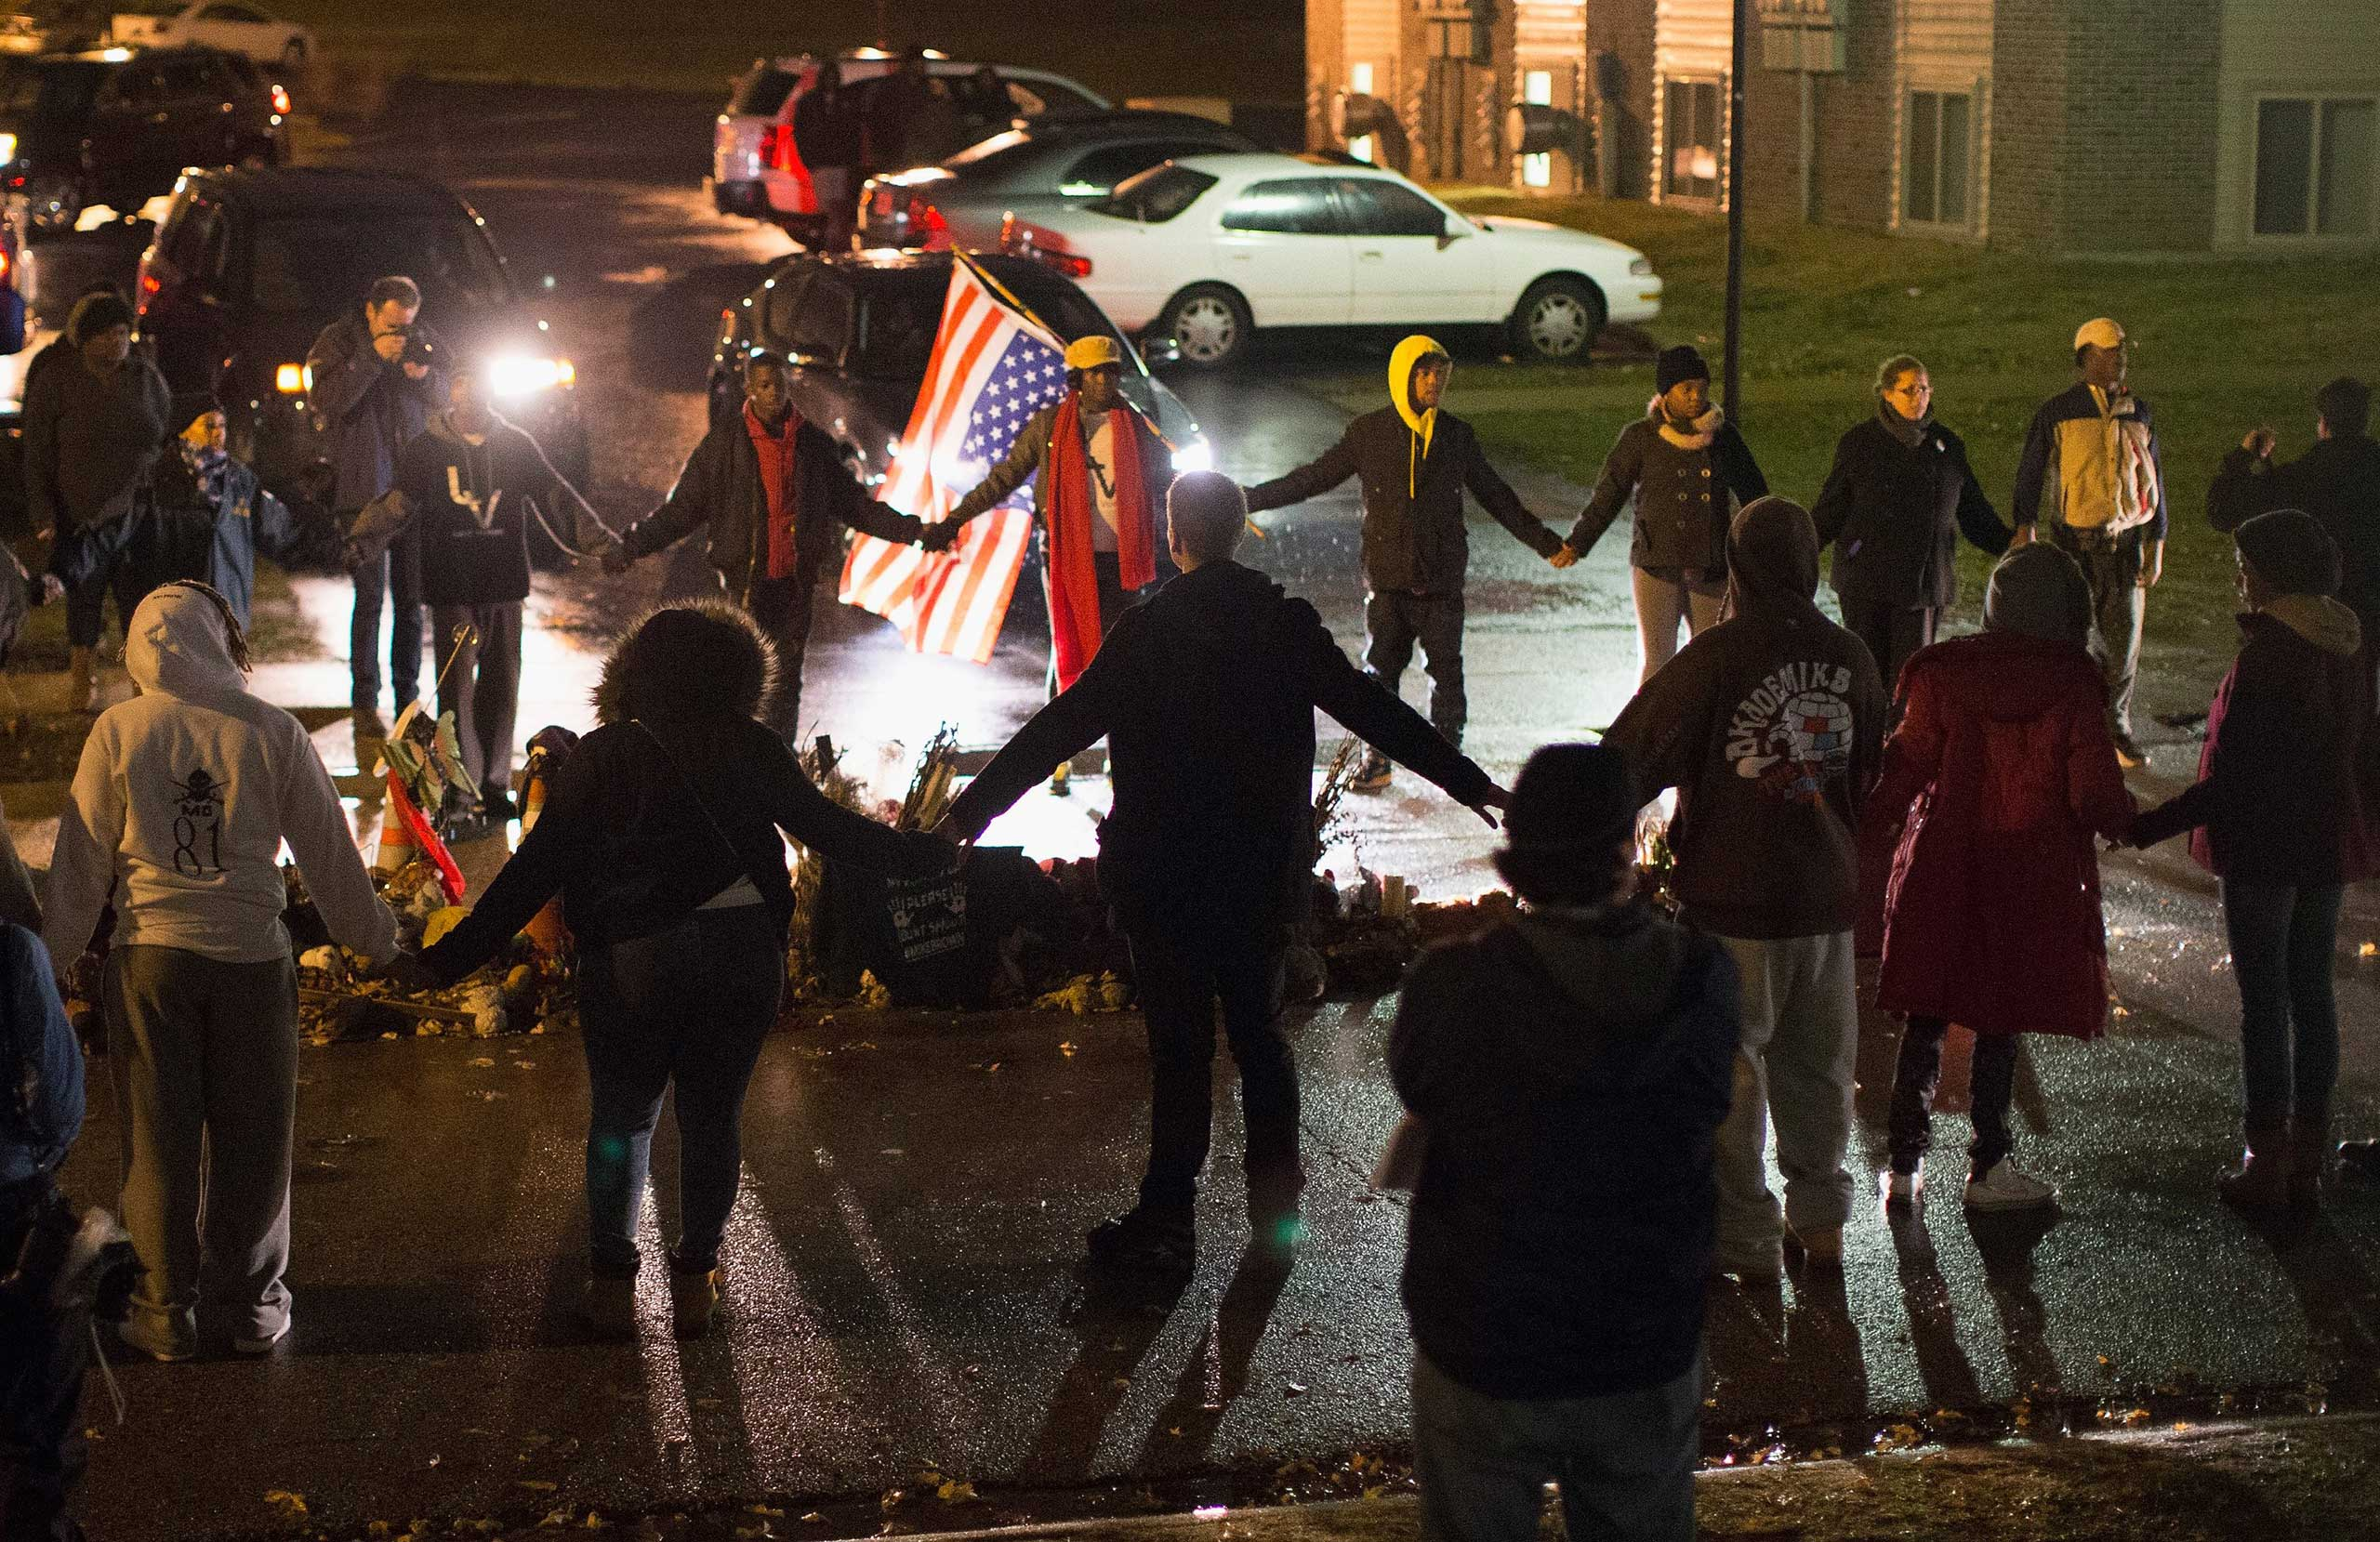 Demonstrators pray around a memorial at the spot where Michael Brown was shot to death on in Ferguson, Mo. on Nov. 22, 2014